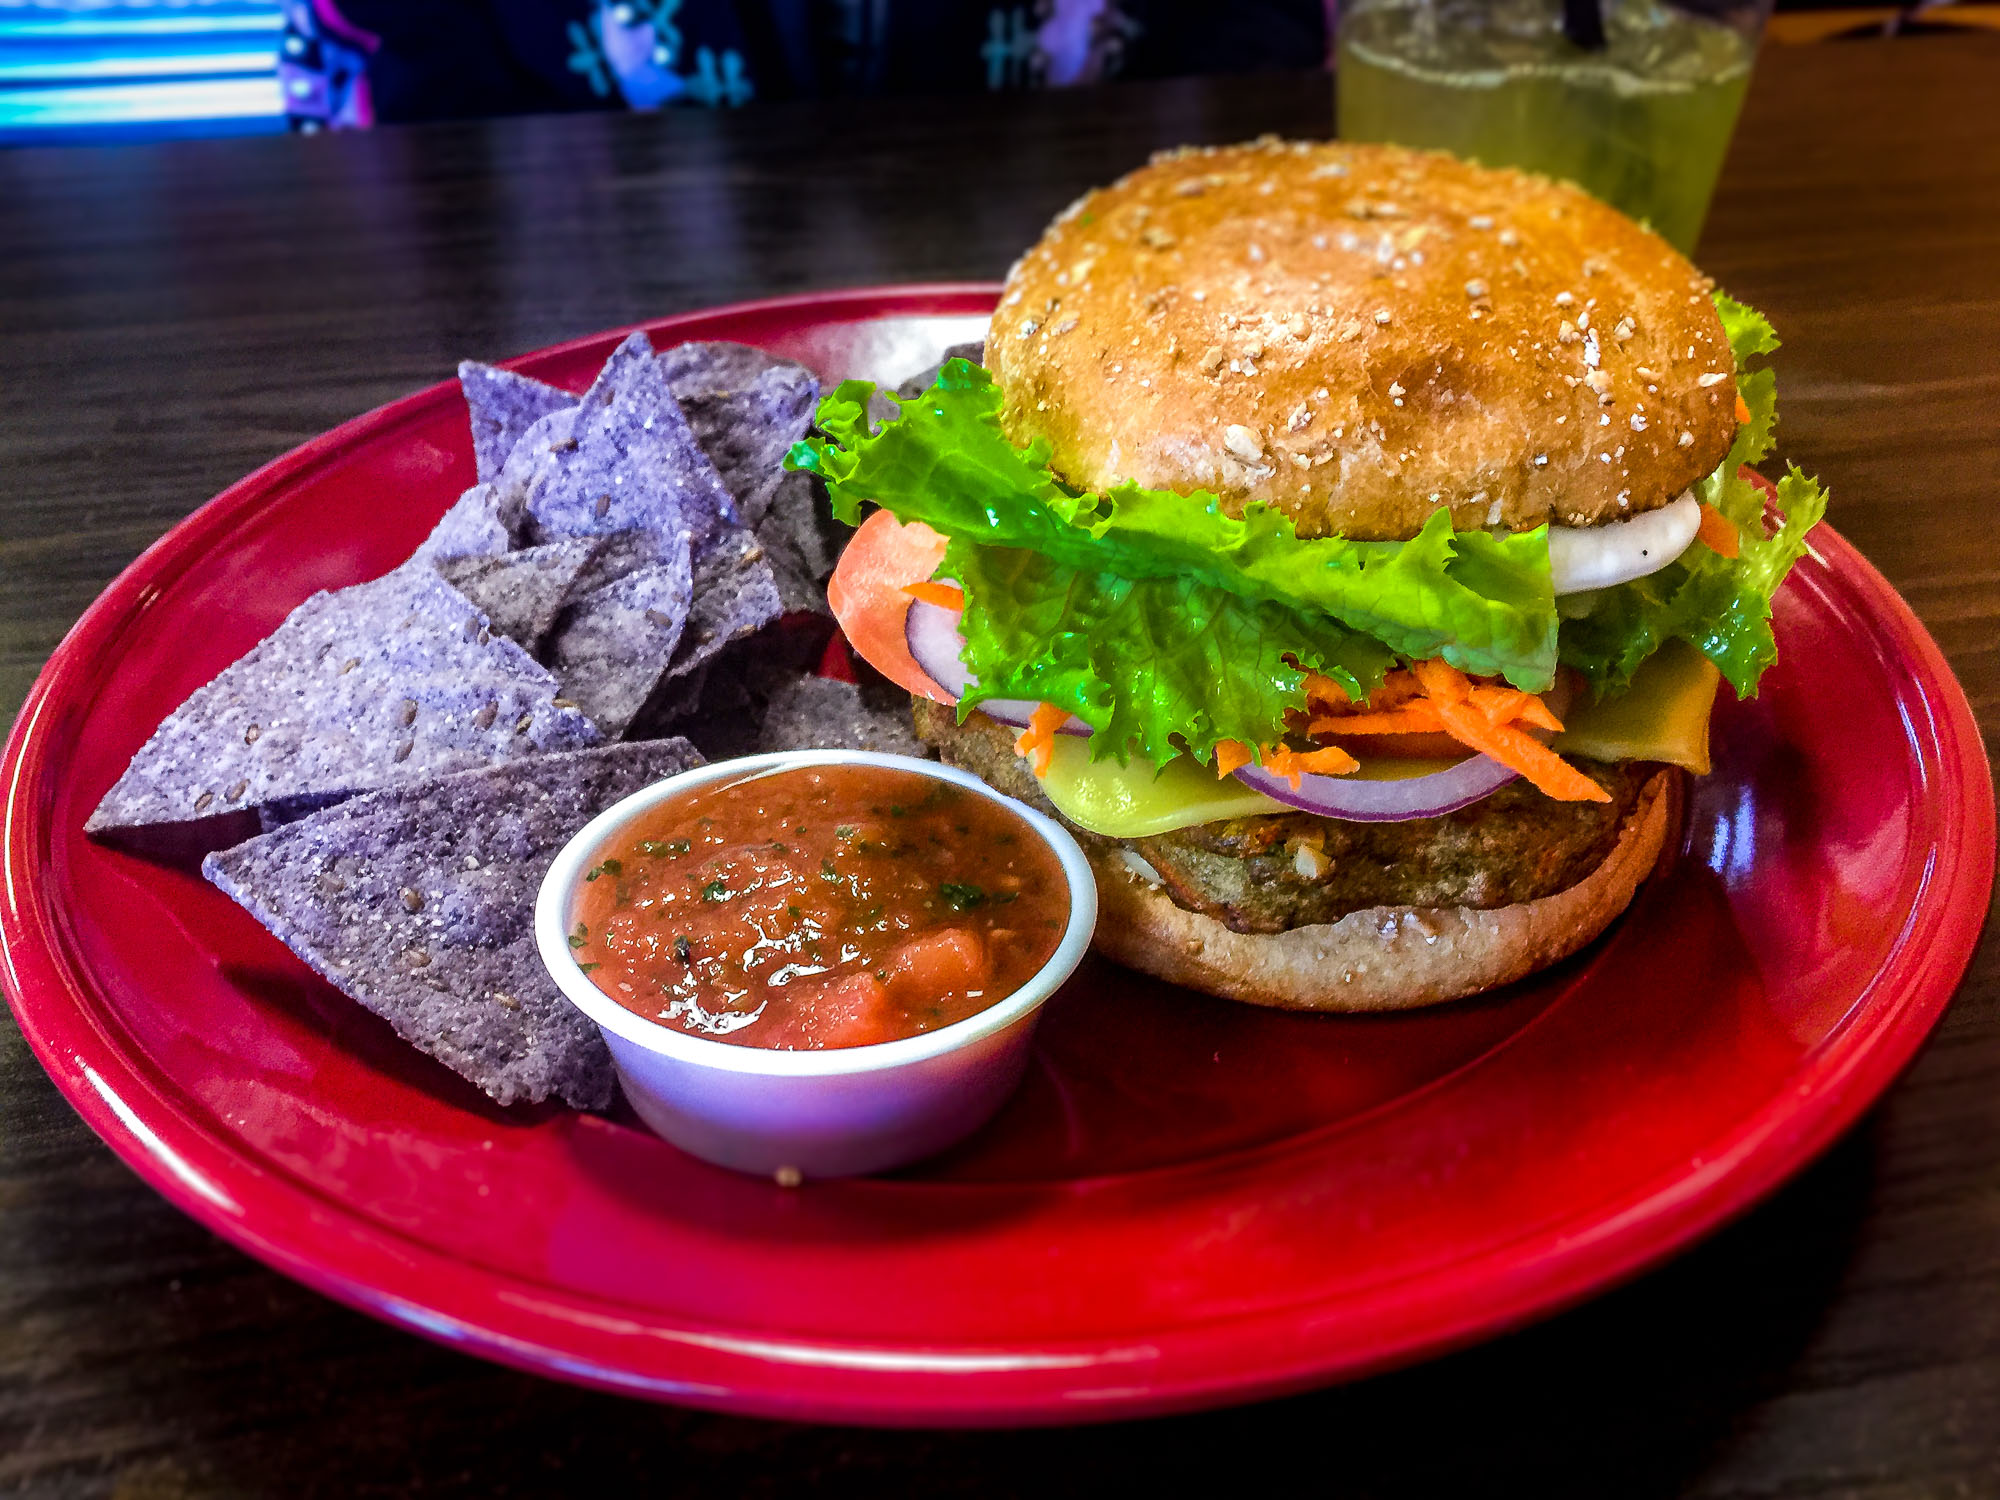 Veggie Burger with Chips and Salsa.